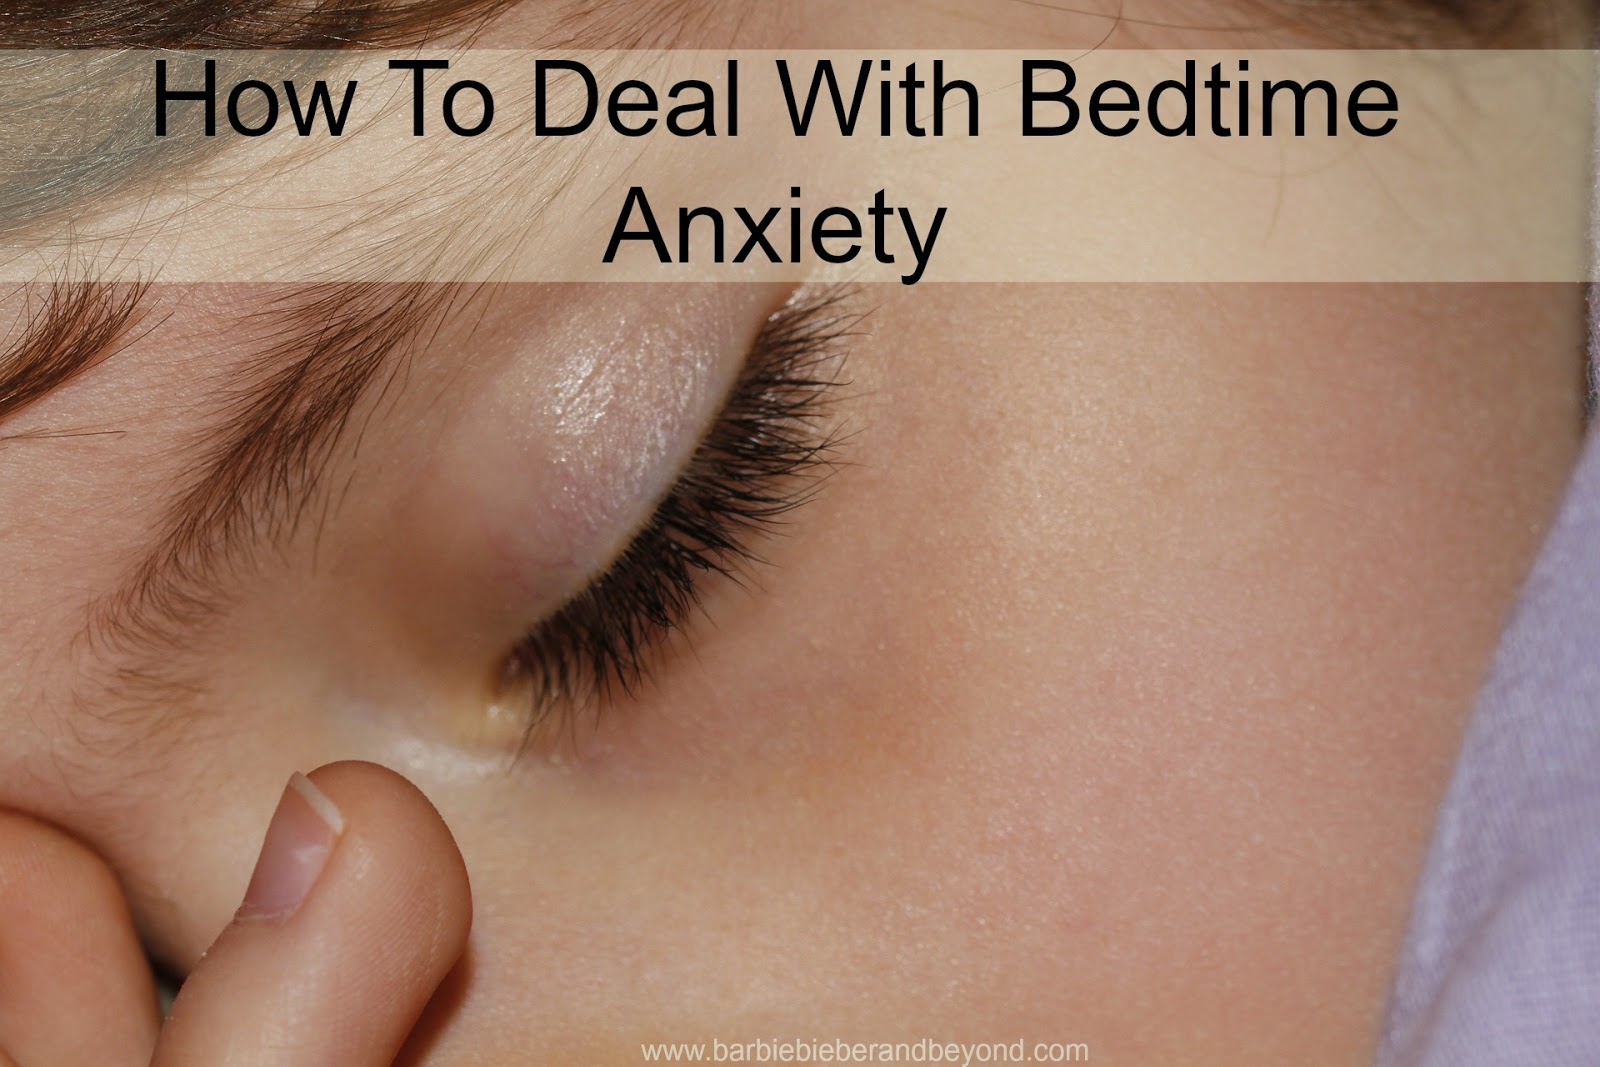 How To Deal With Bedtime Anxiety